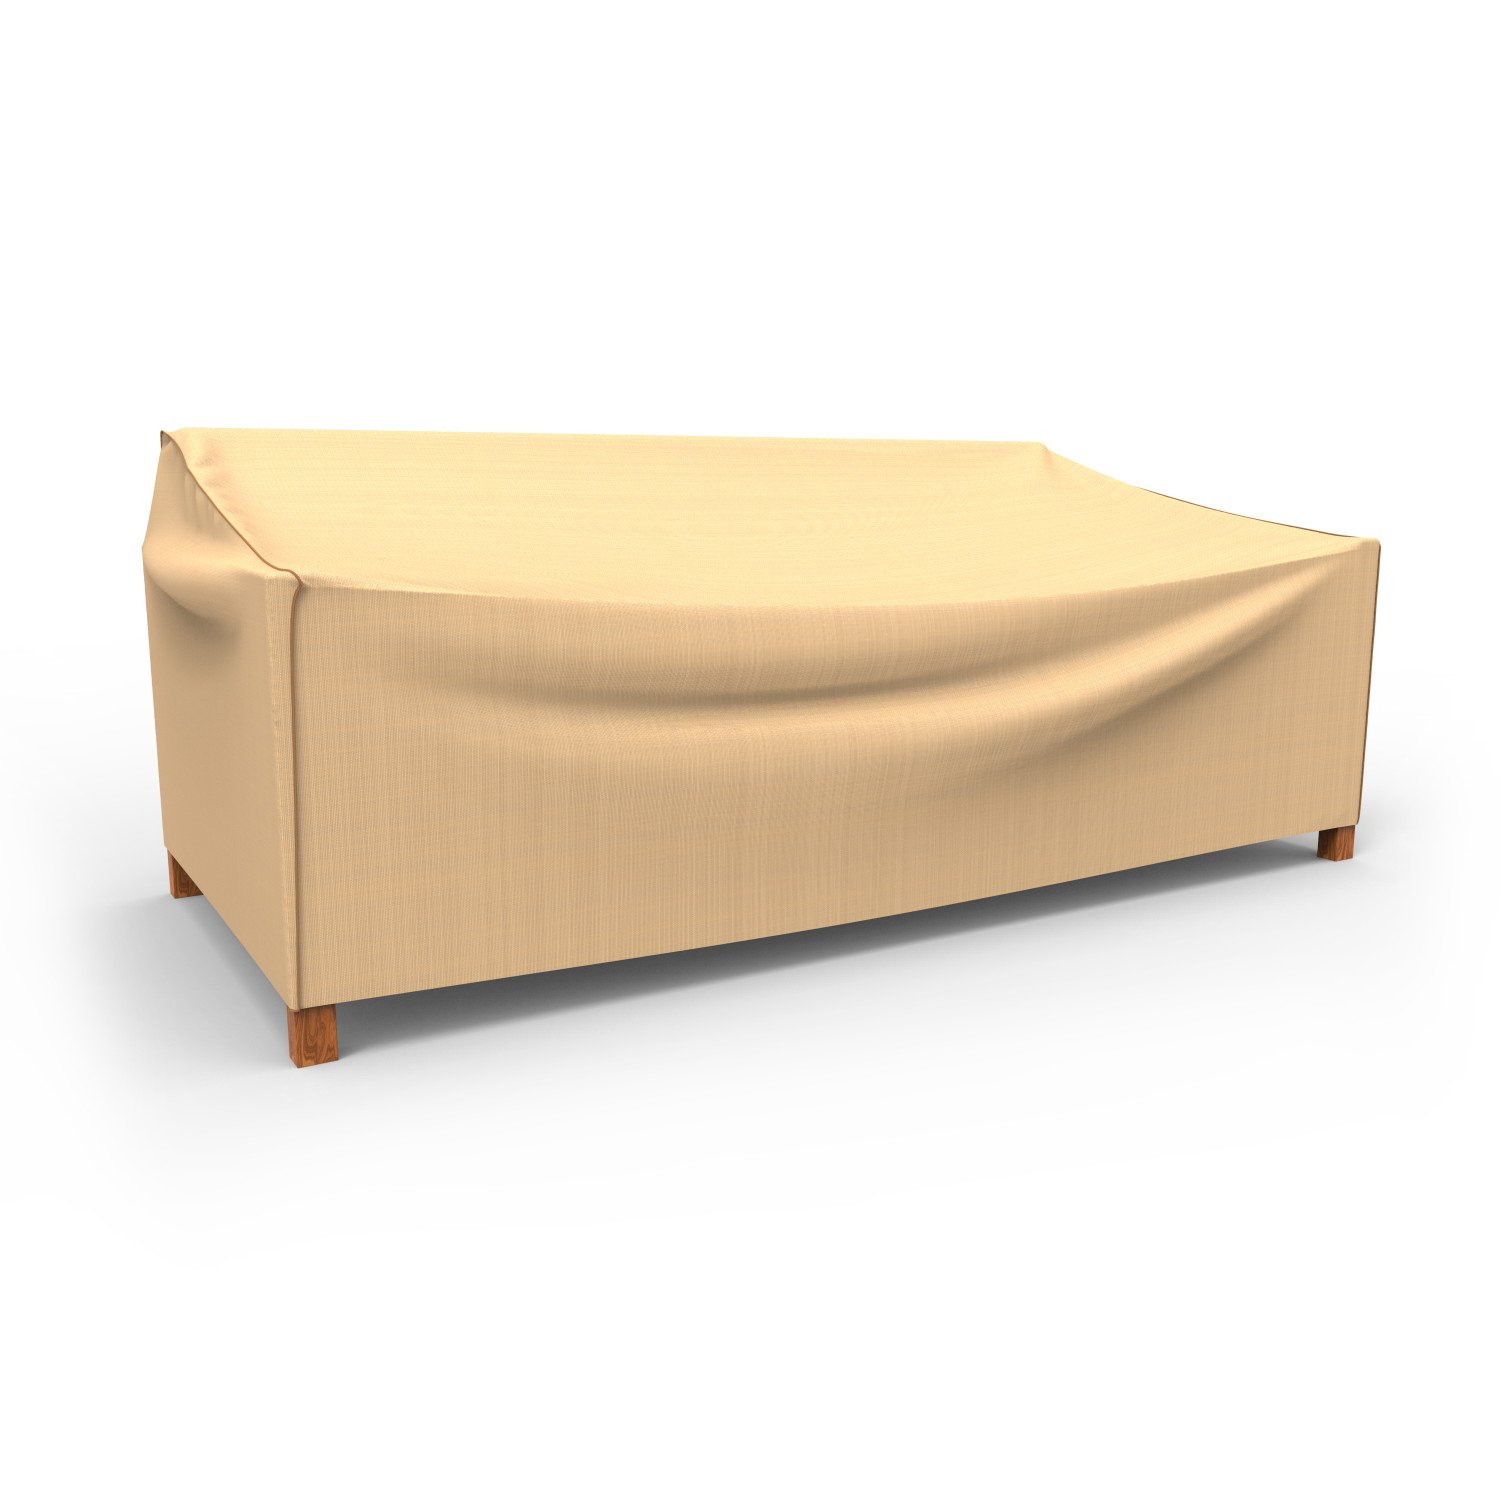 Budge P3W05TNNW1 Outdoor Patio Sofa Cover-Extra Large Waterproof, Durable, XL, Tan